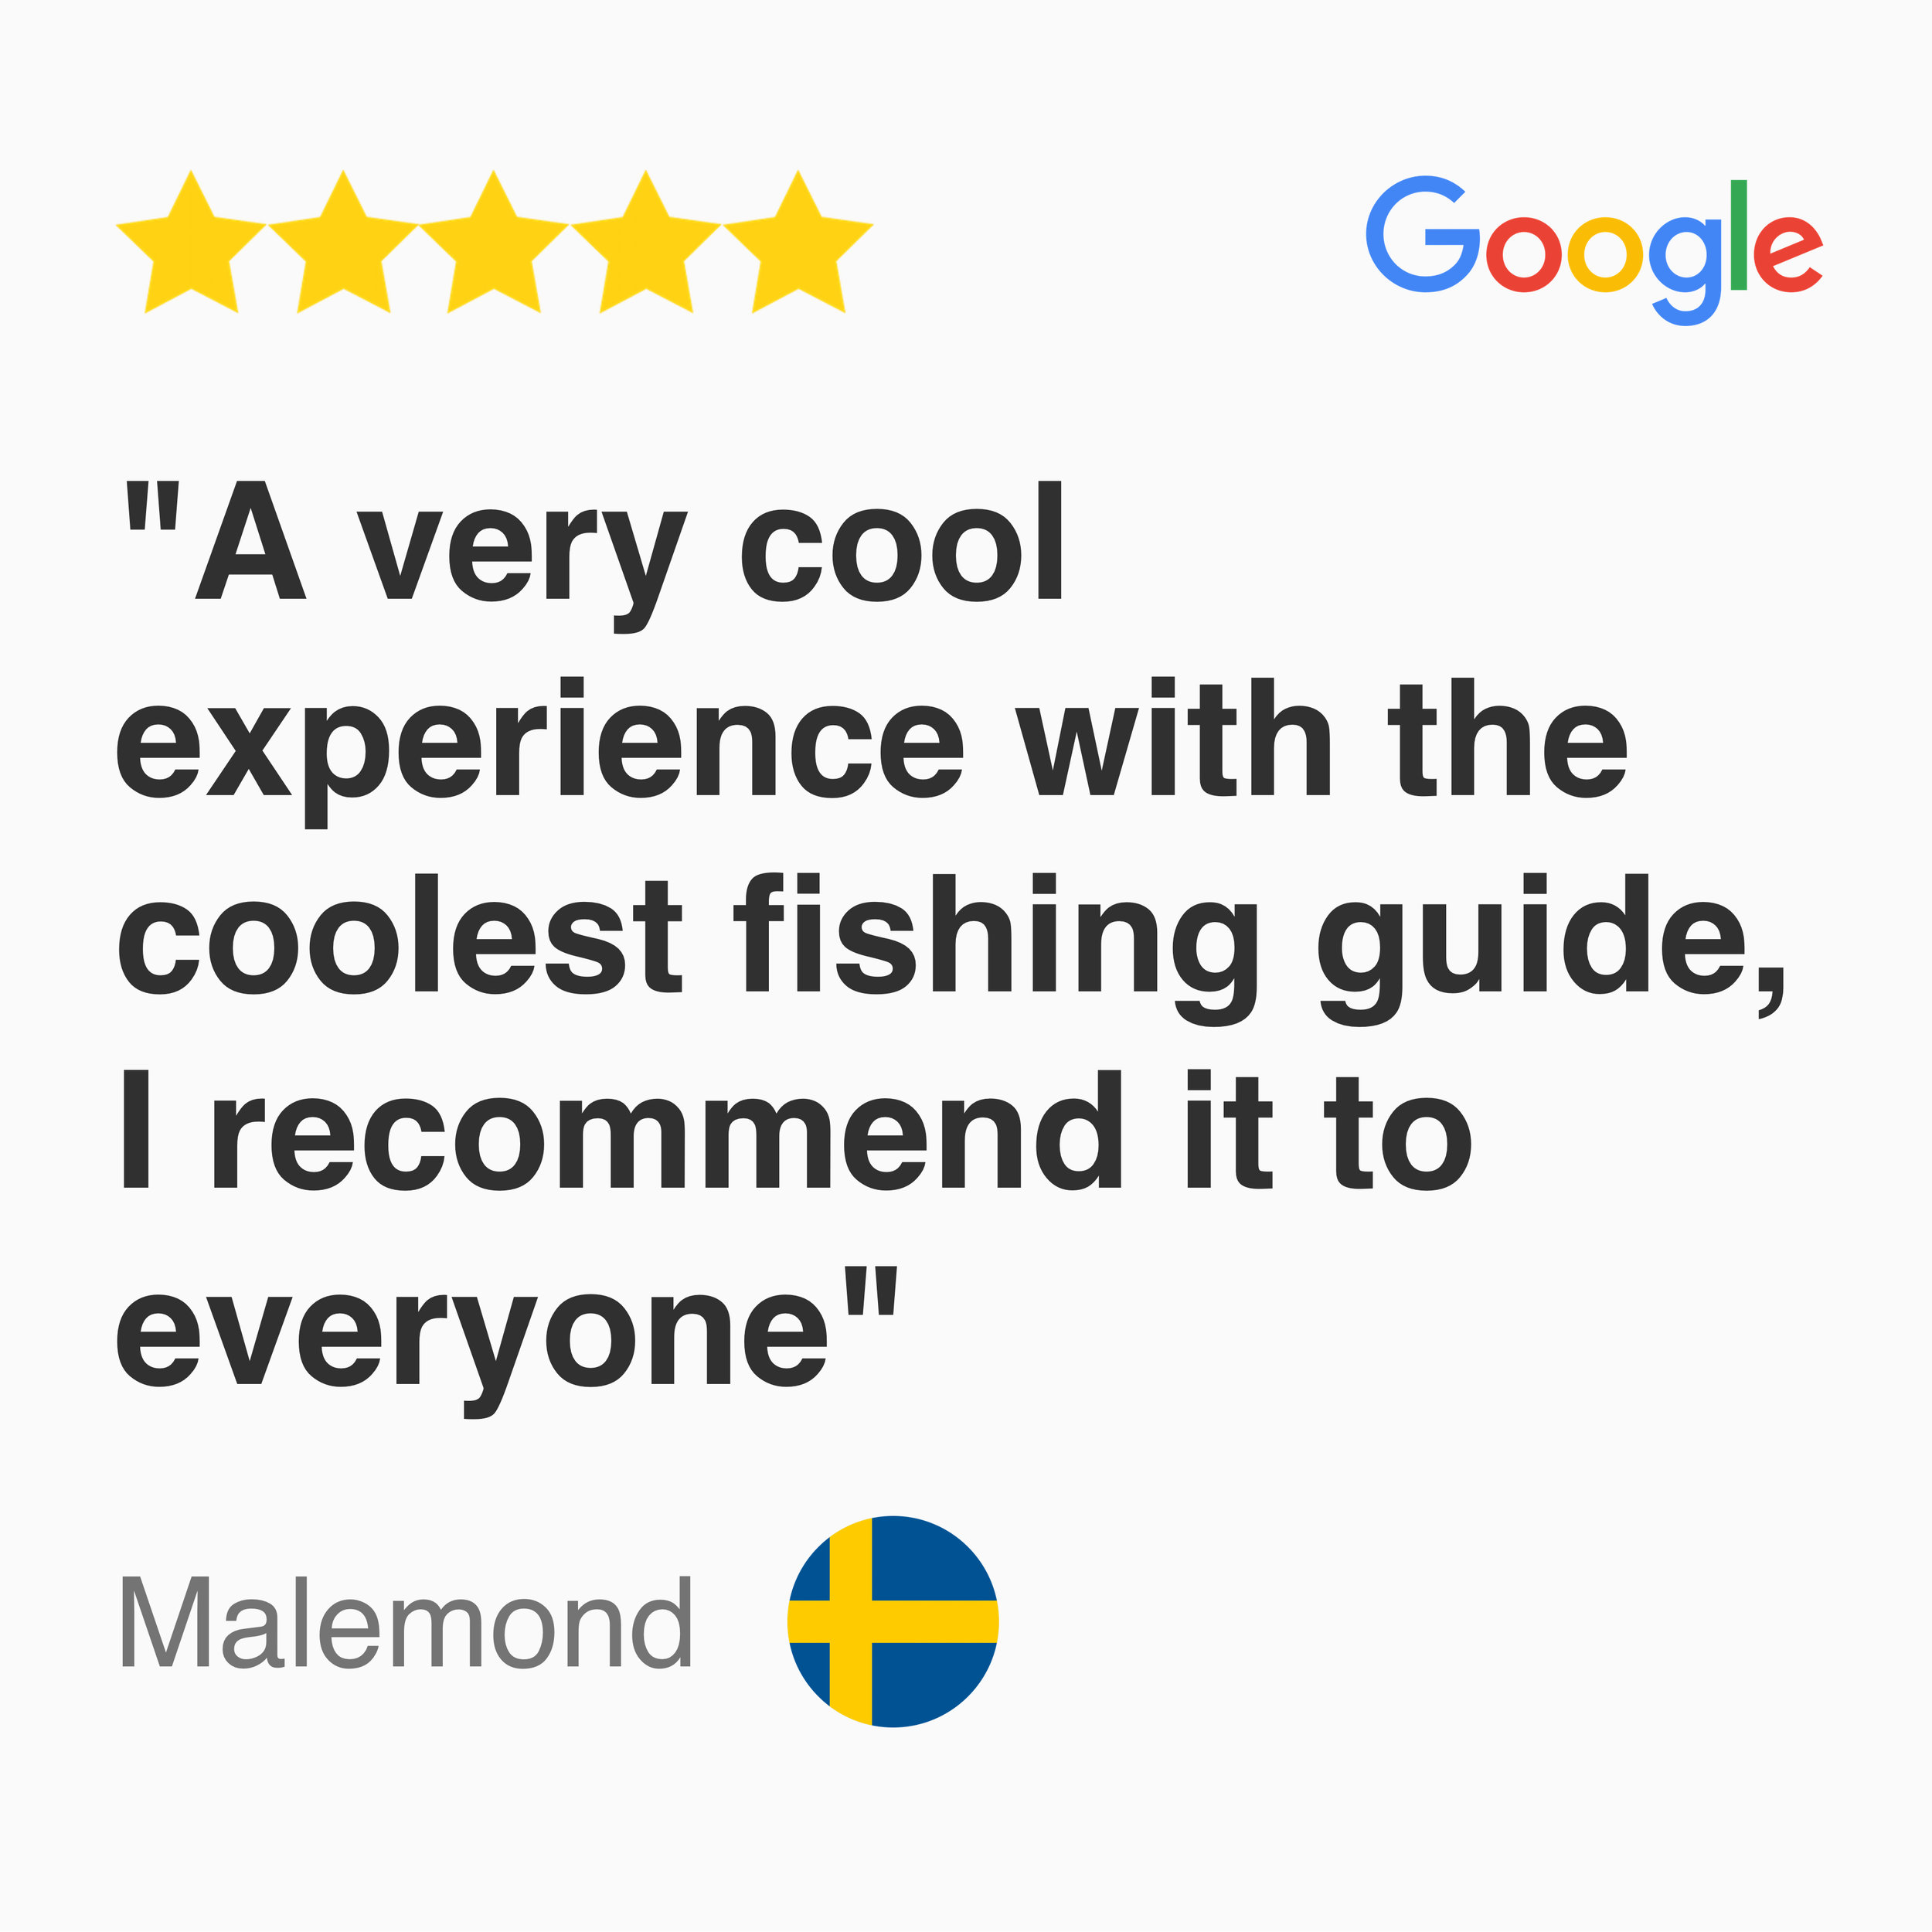 5 star Google Review for kayak fishing fever tour Singapore, A very cool experience with the coolest fishing guide, I recommend it to everyone.